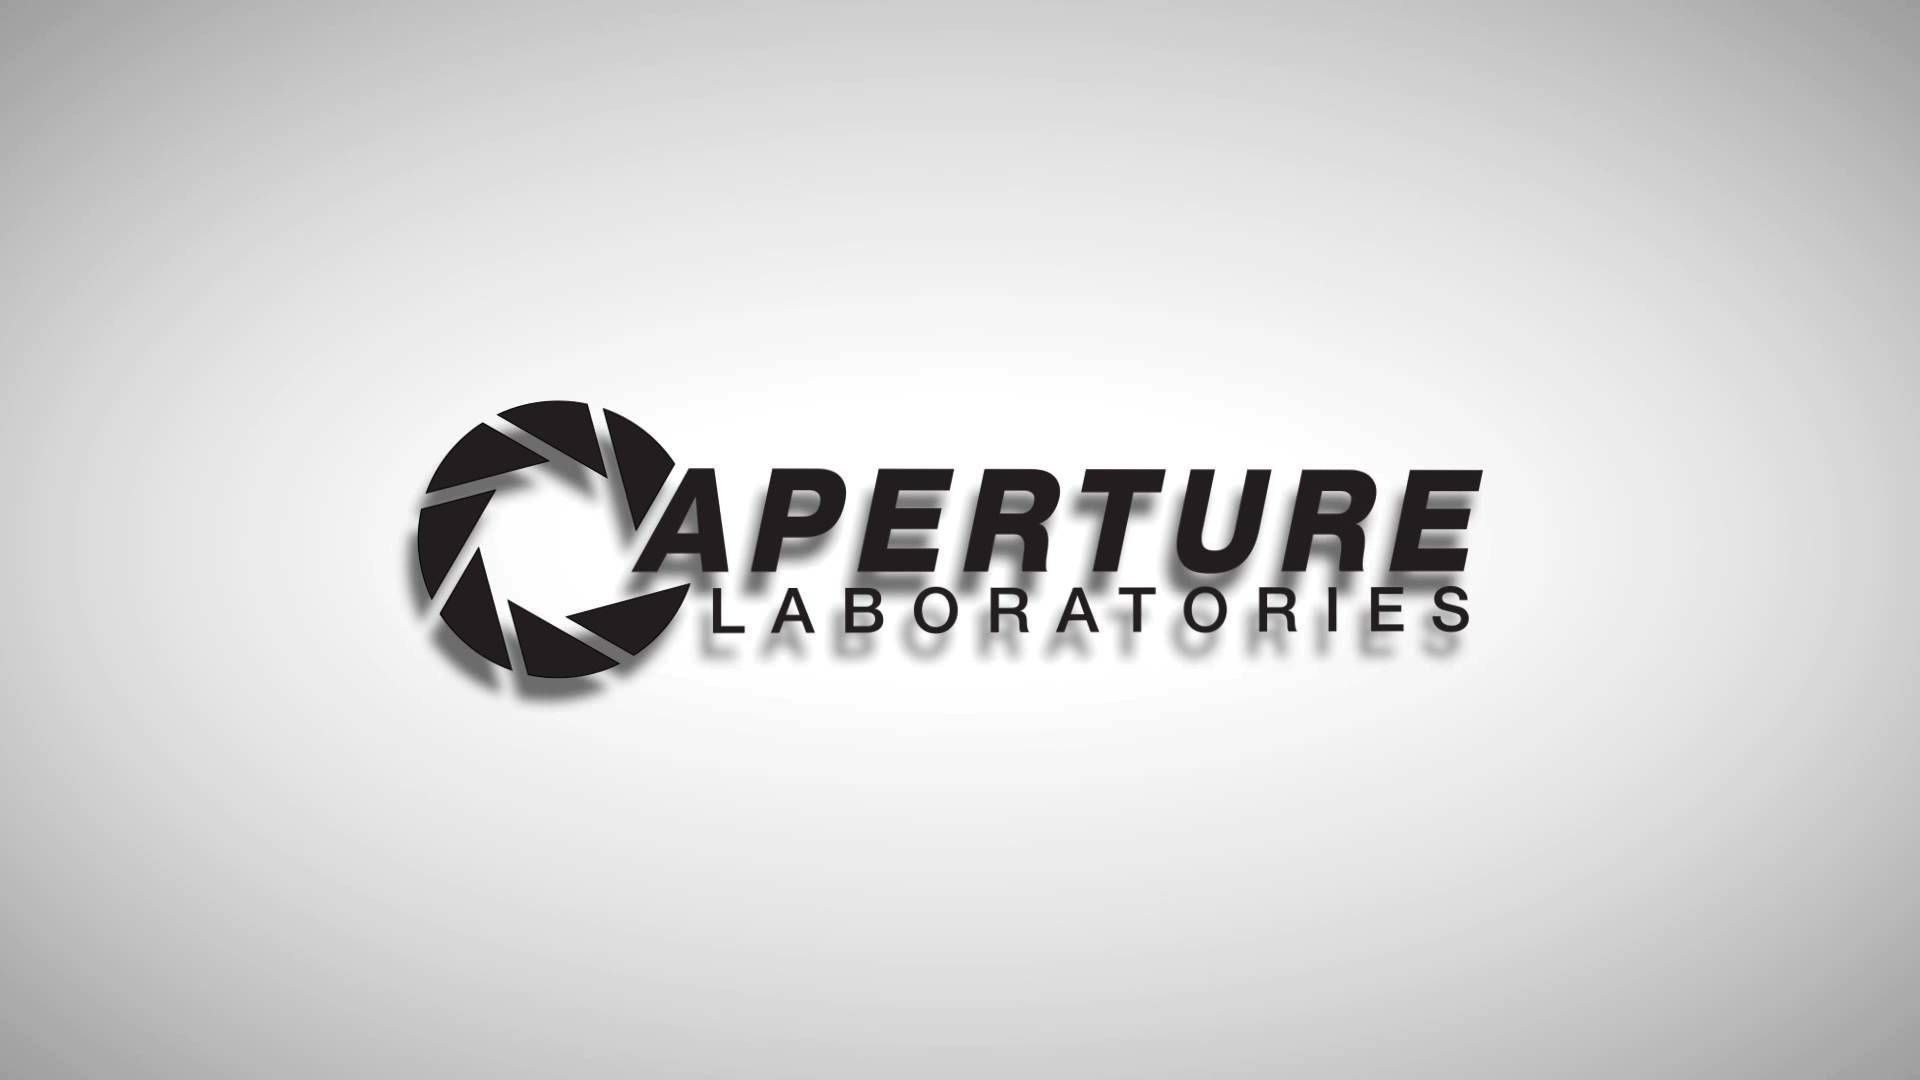 Aperture Science Computer Wallpaper